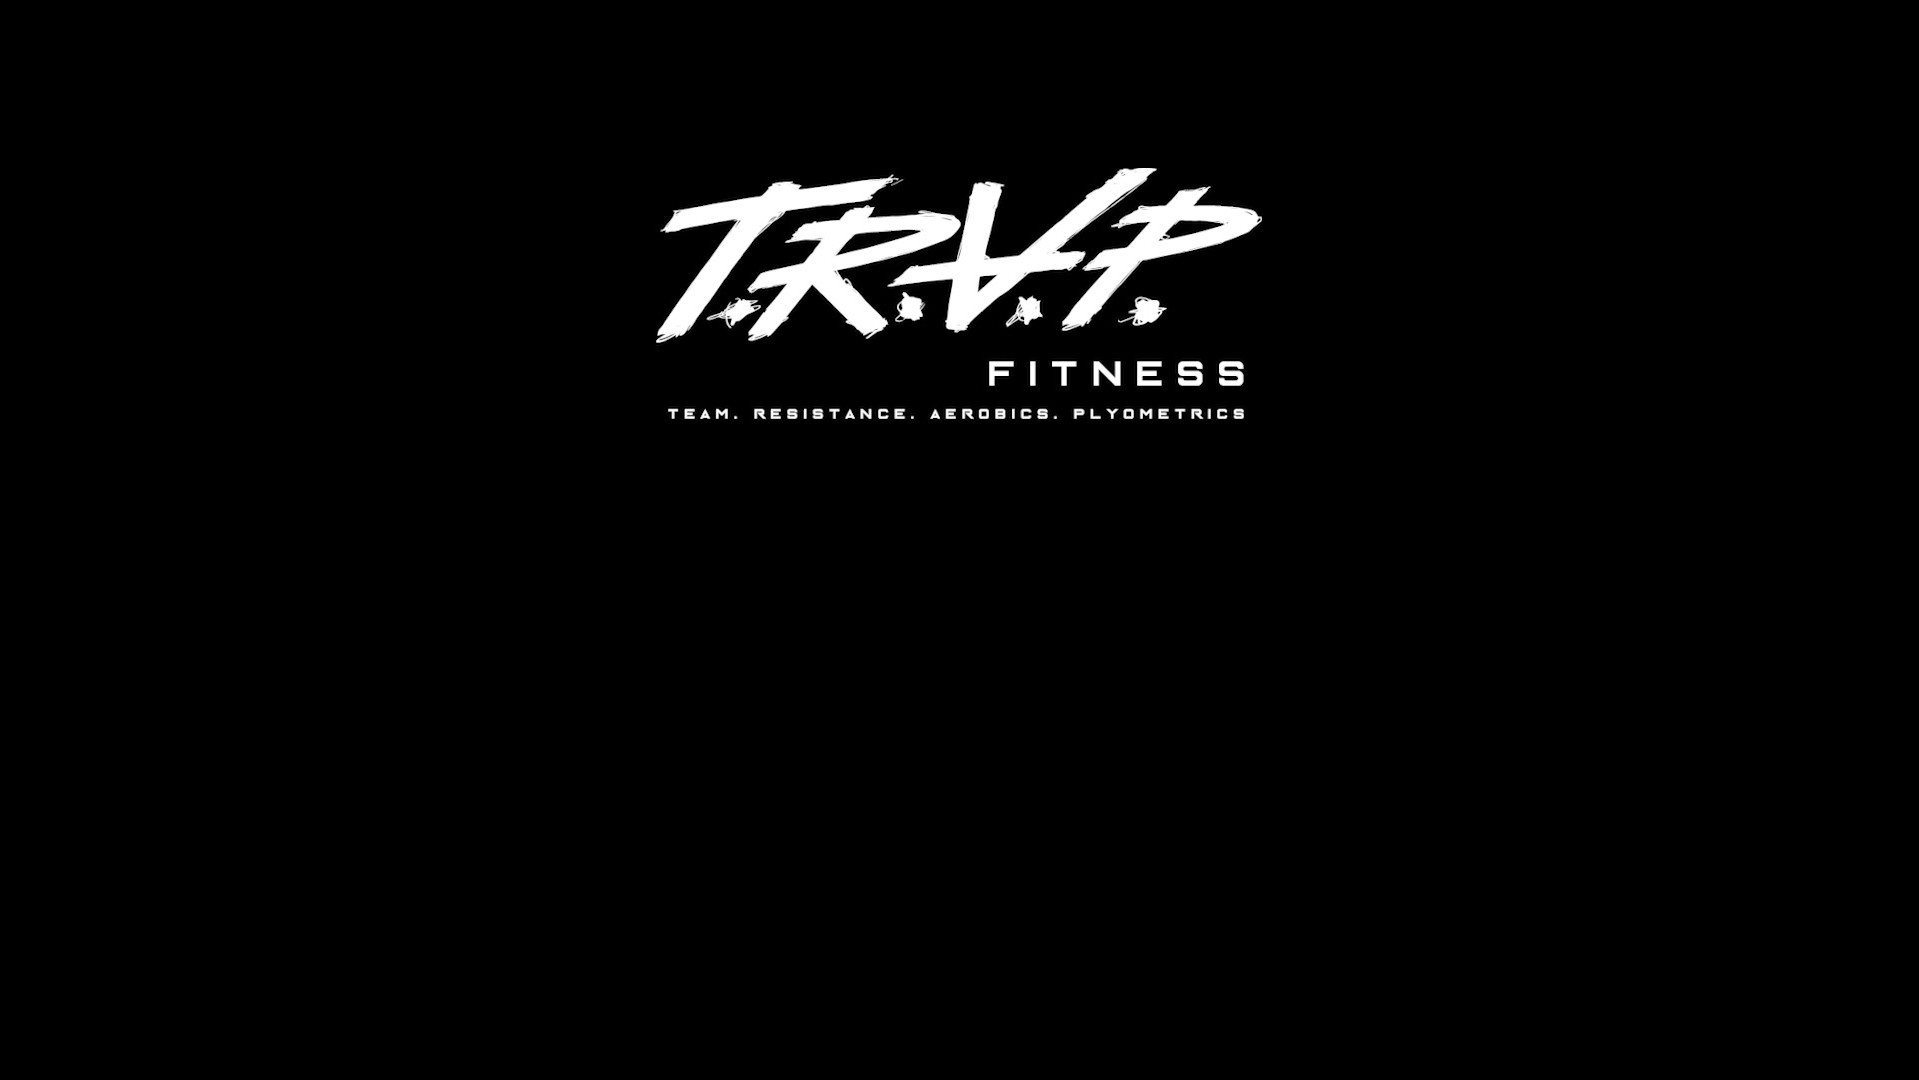 trap fitness v2.mp4